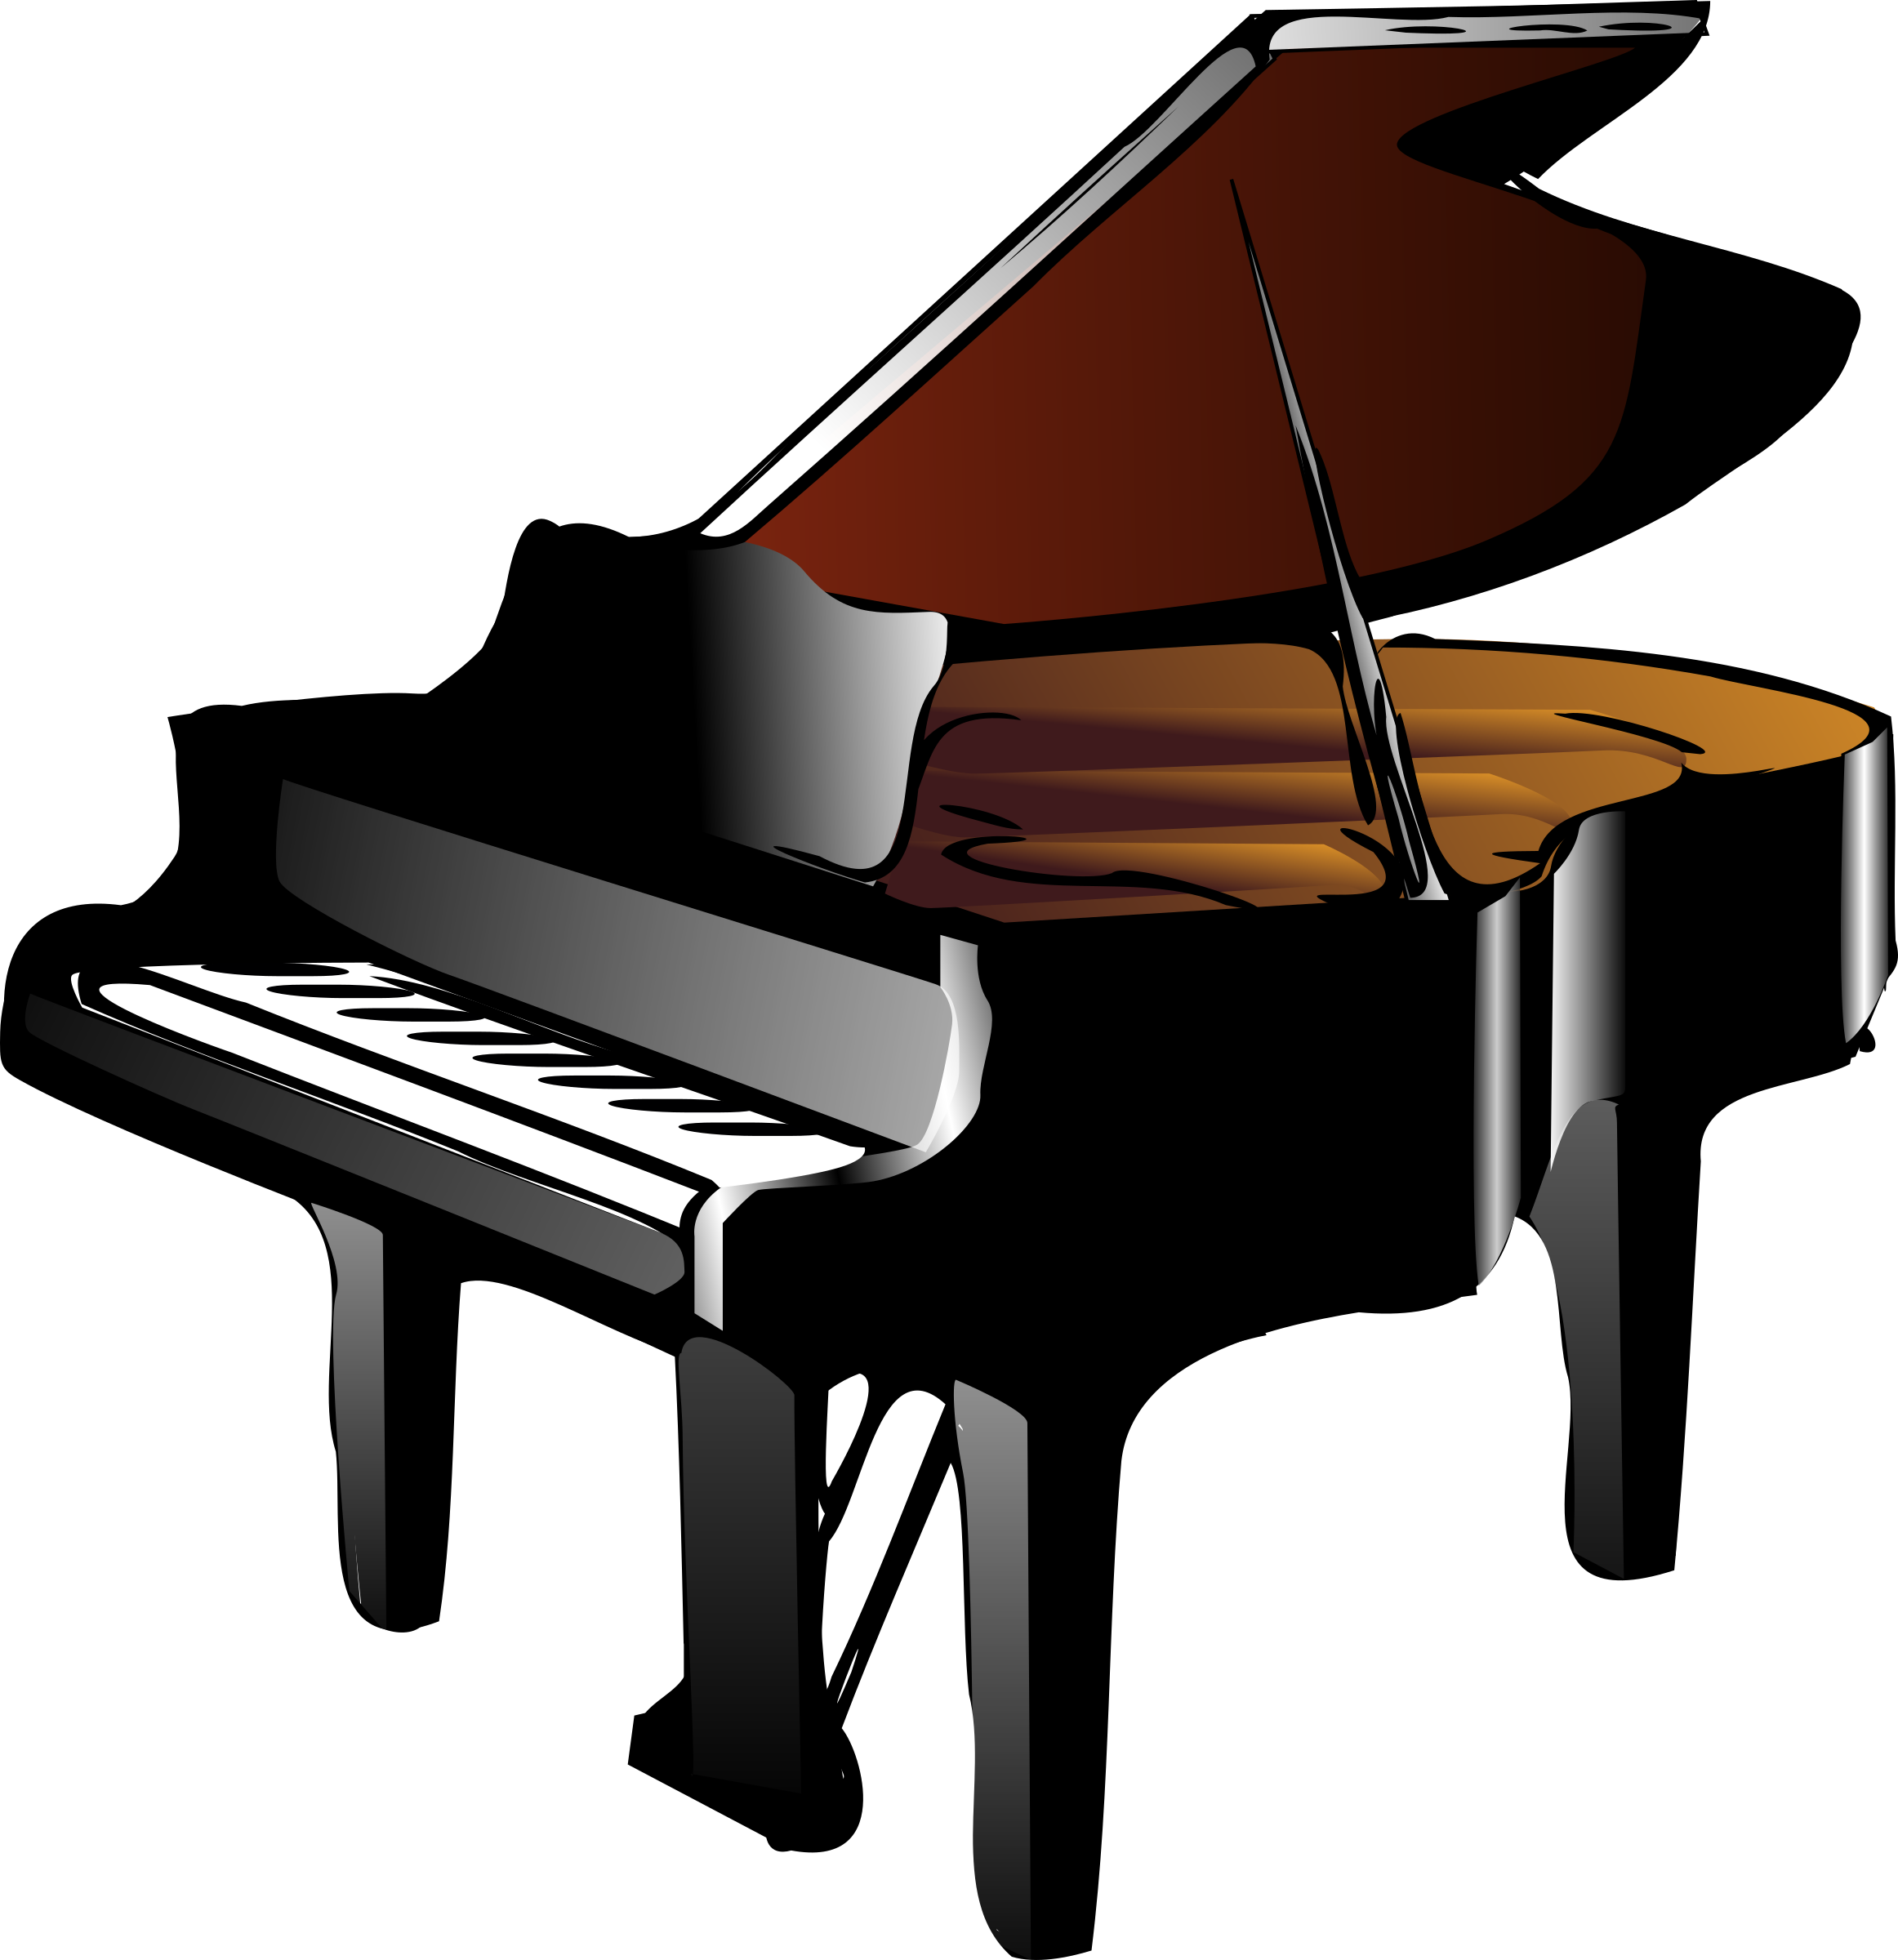 Clipart piano image png. Transparent pianos big png free library